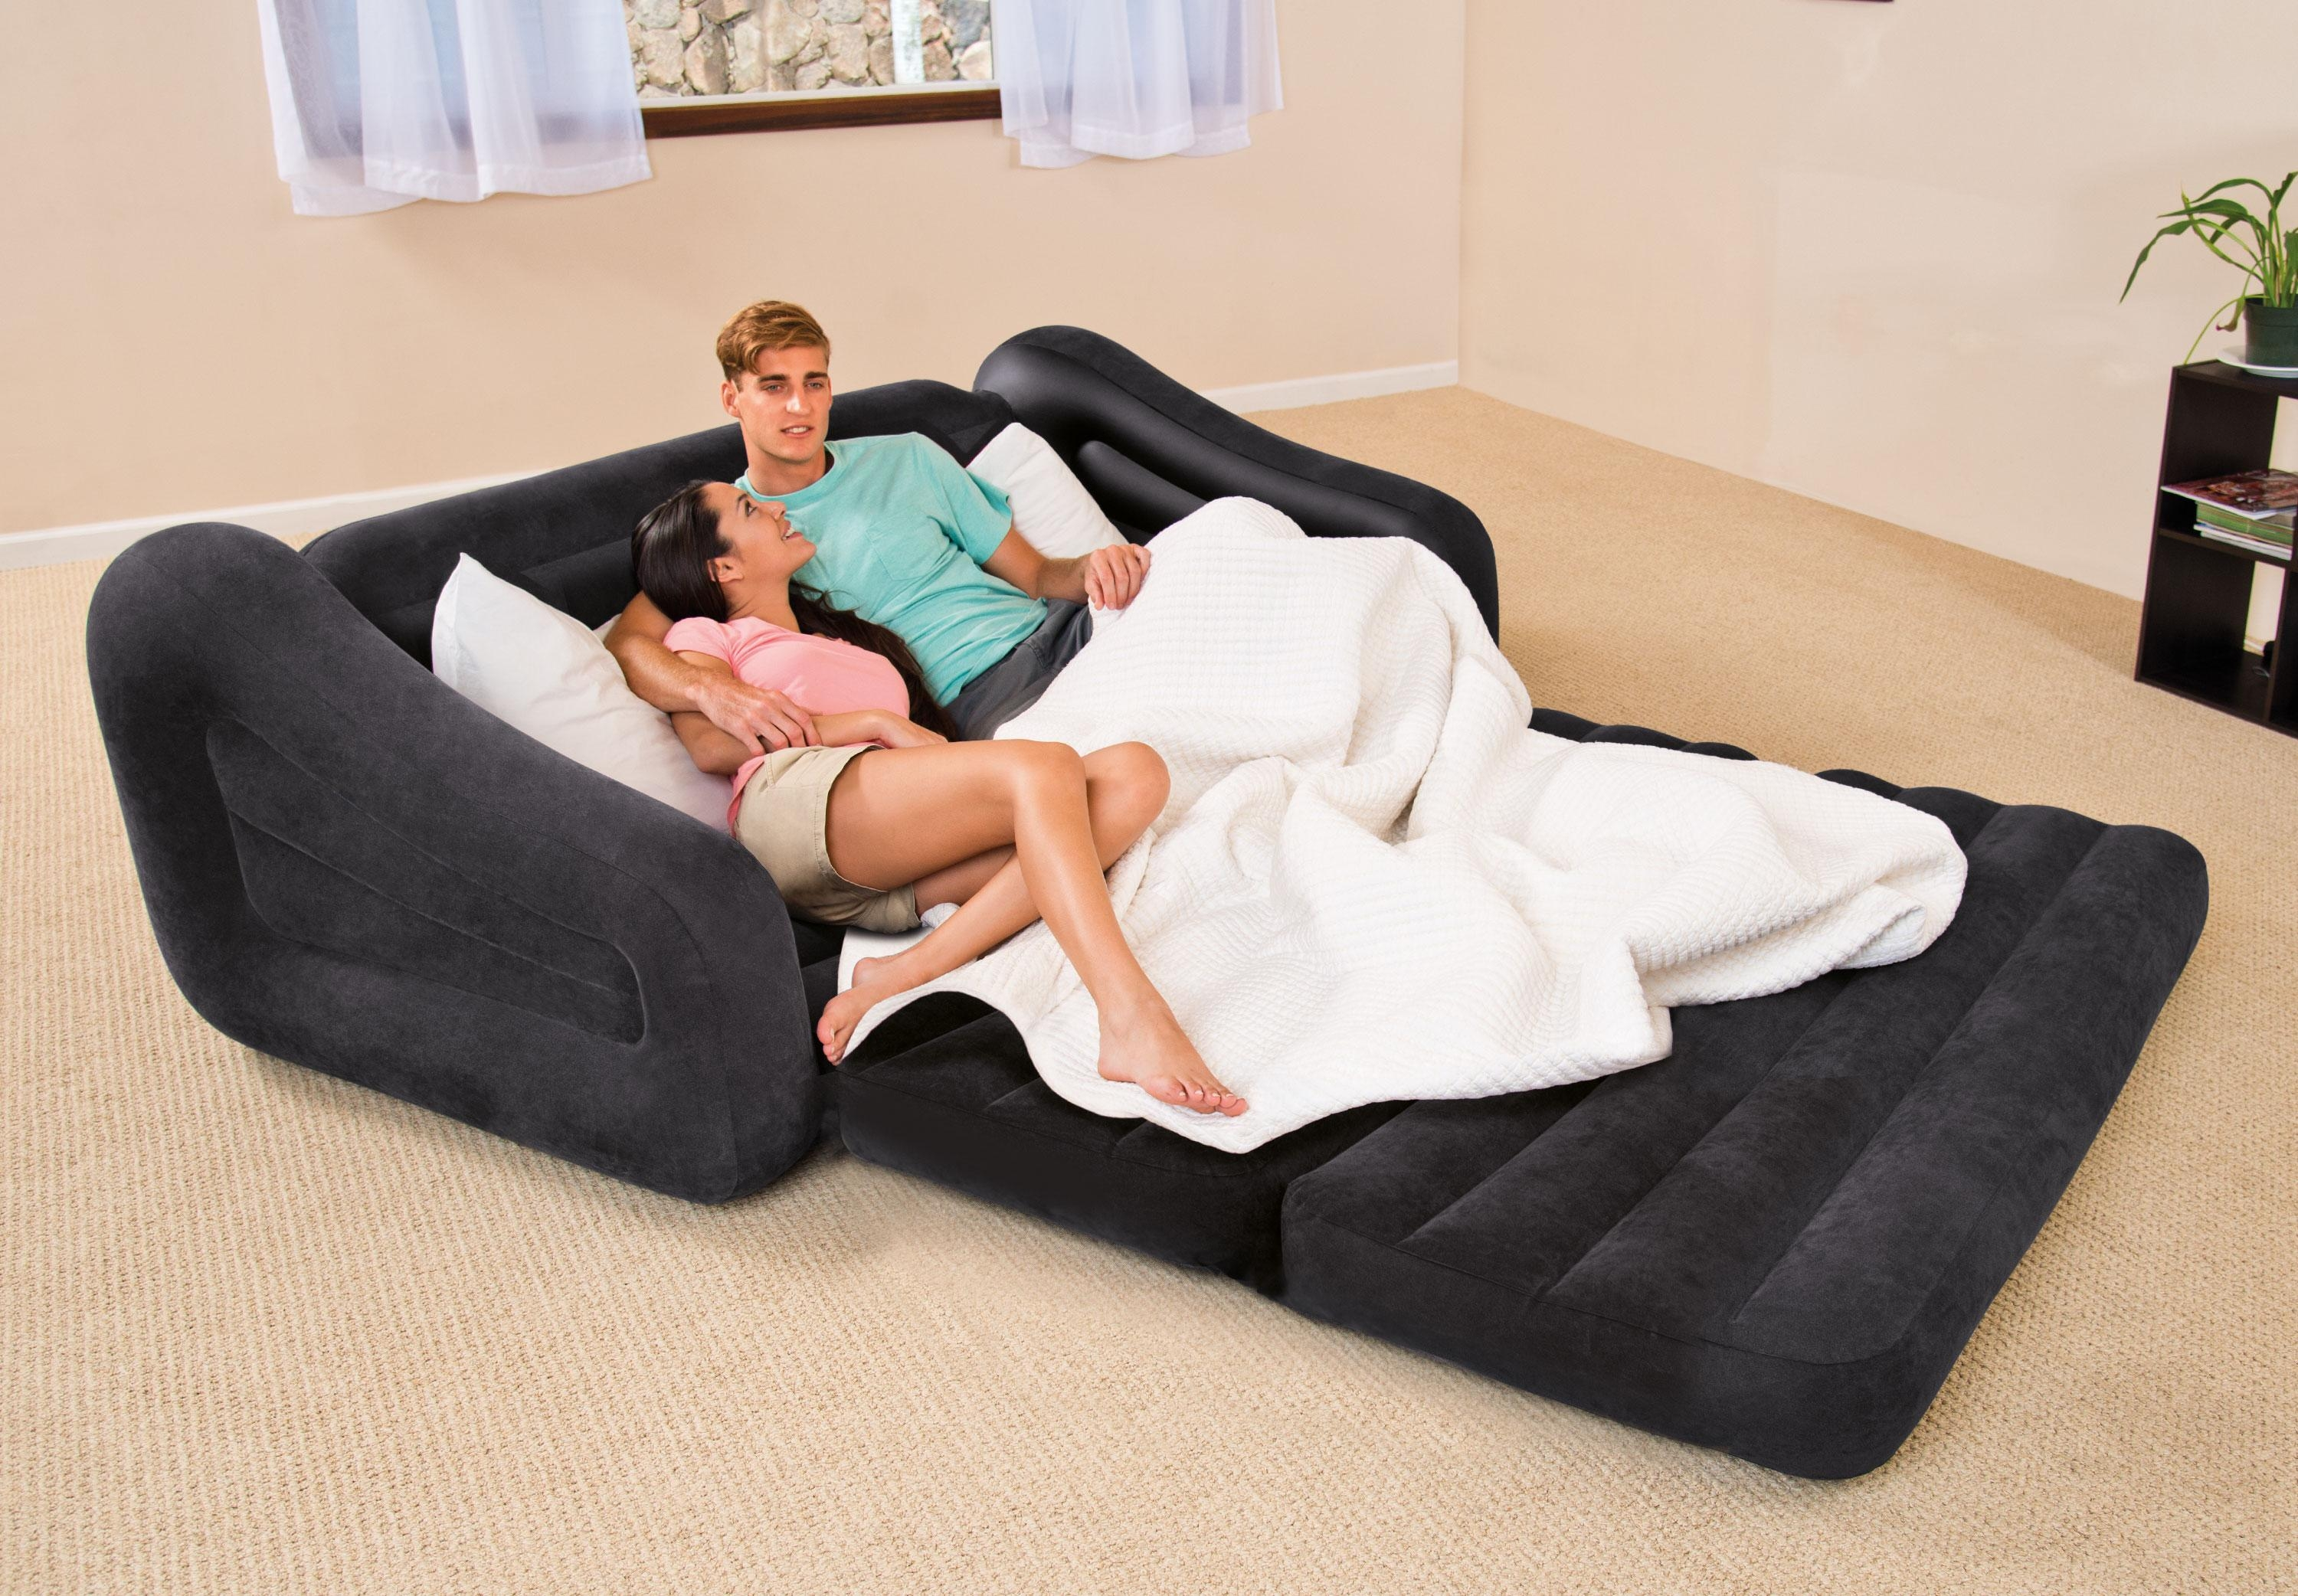 Intex Inflatable Pull Out Sofa Queen Bed Sleeper 68566Ep + 66619E Throughout Intex Inflatable Pull Out Sofas (View 7 of 20)